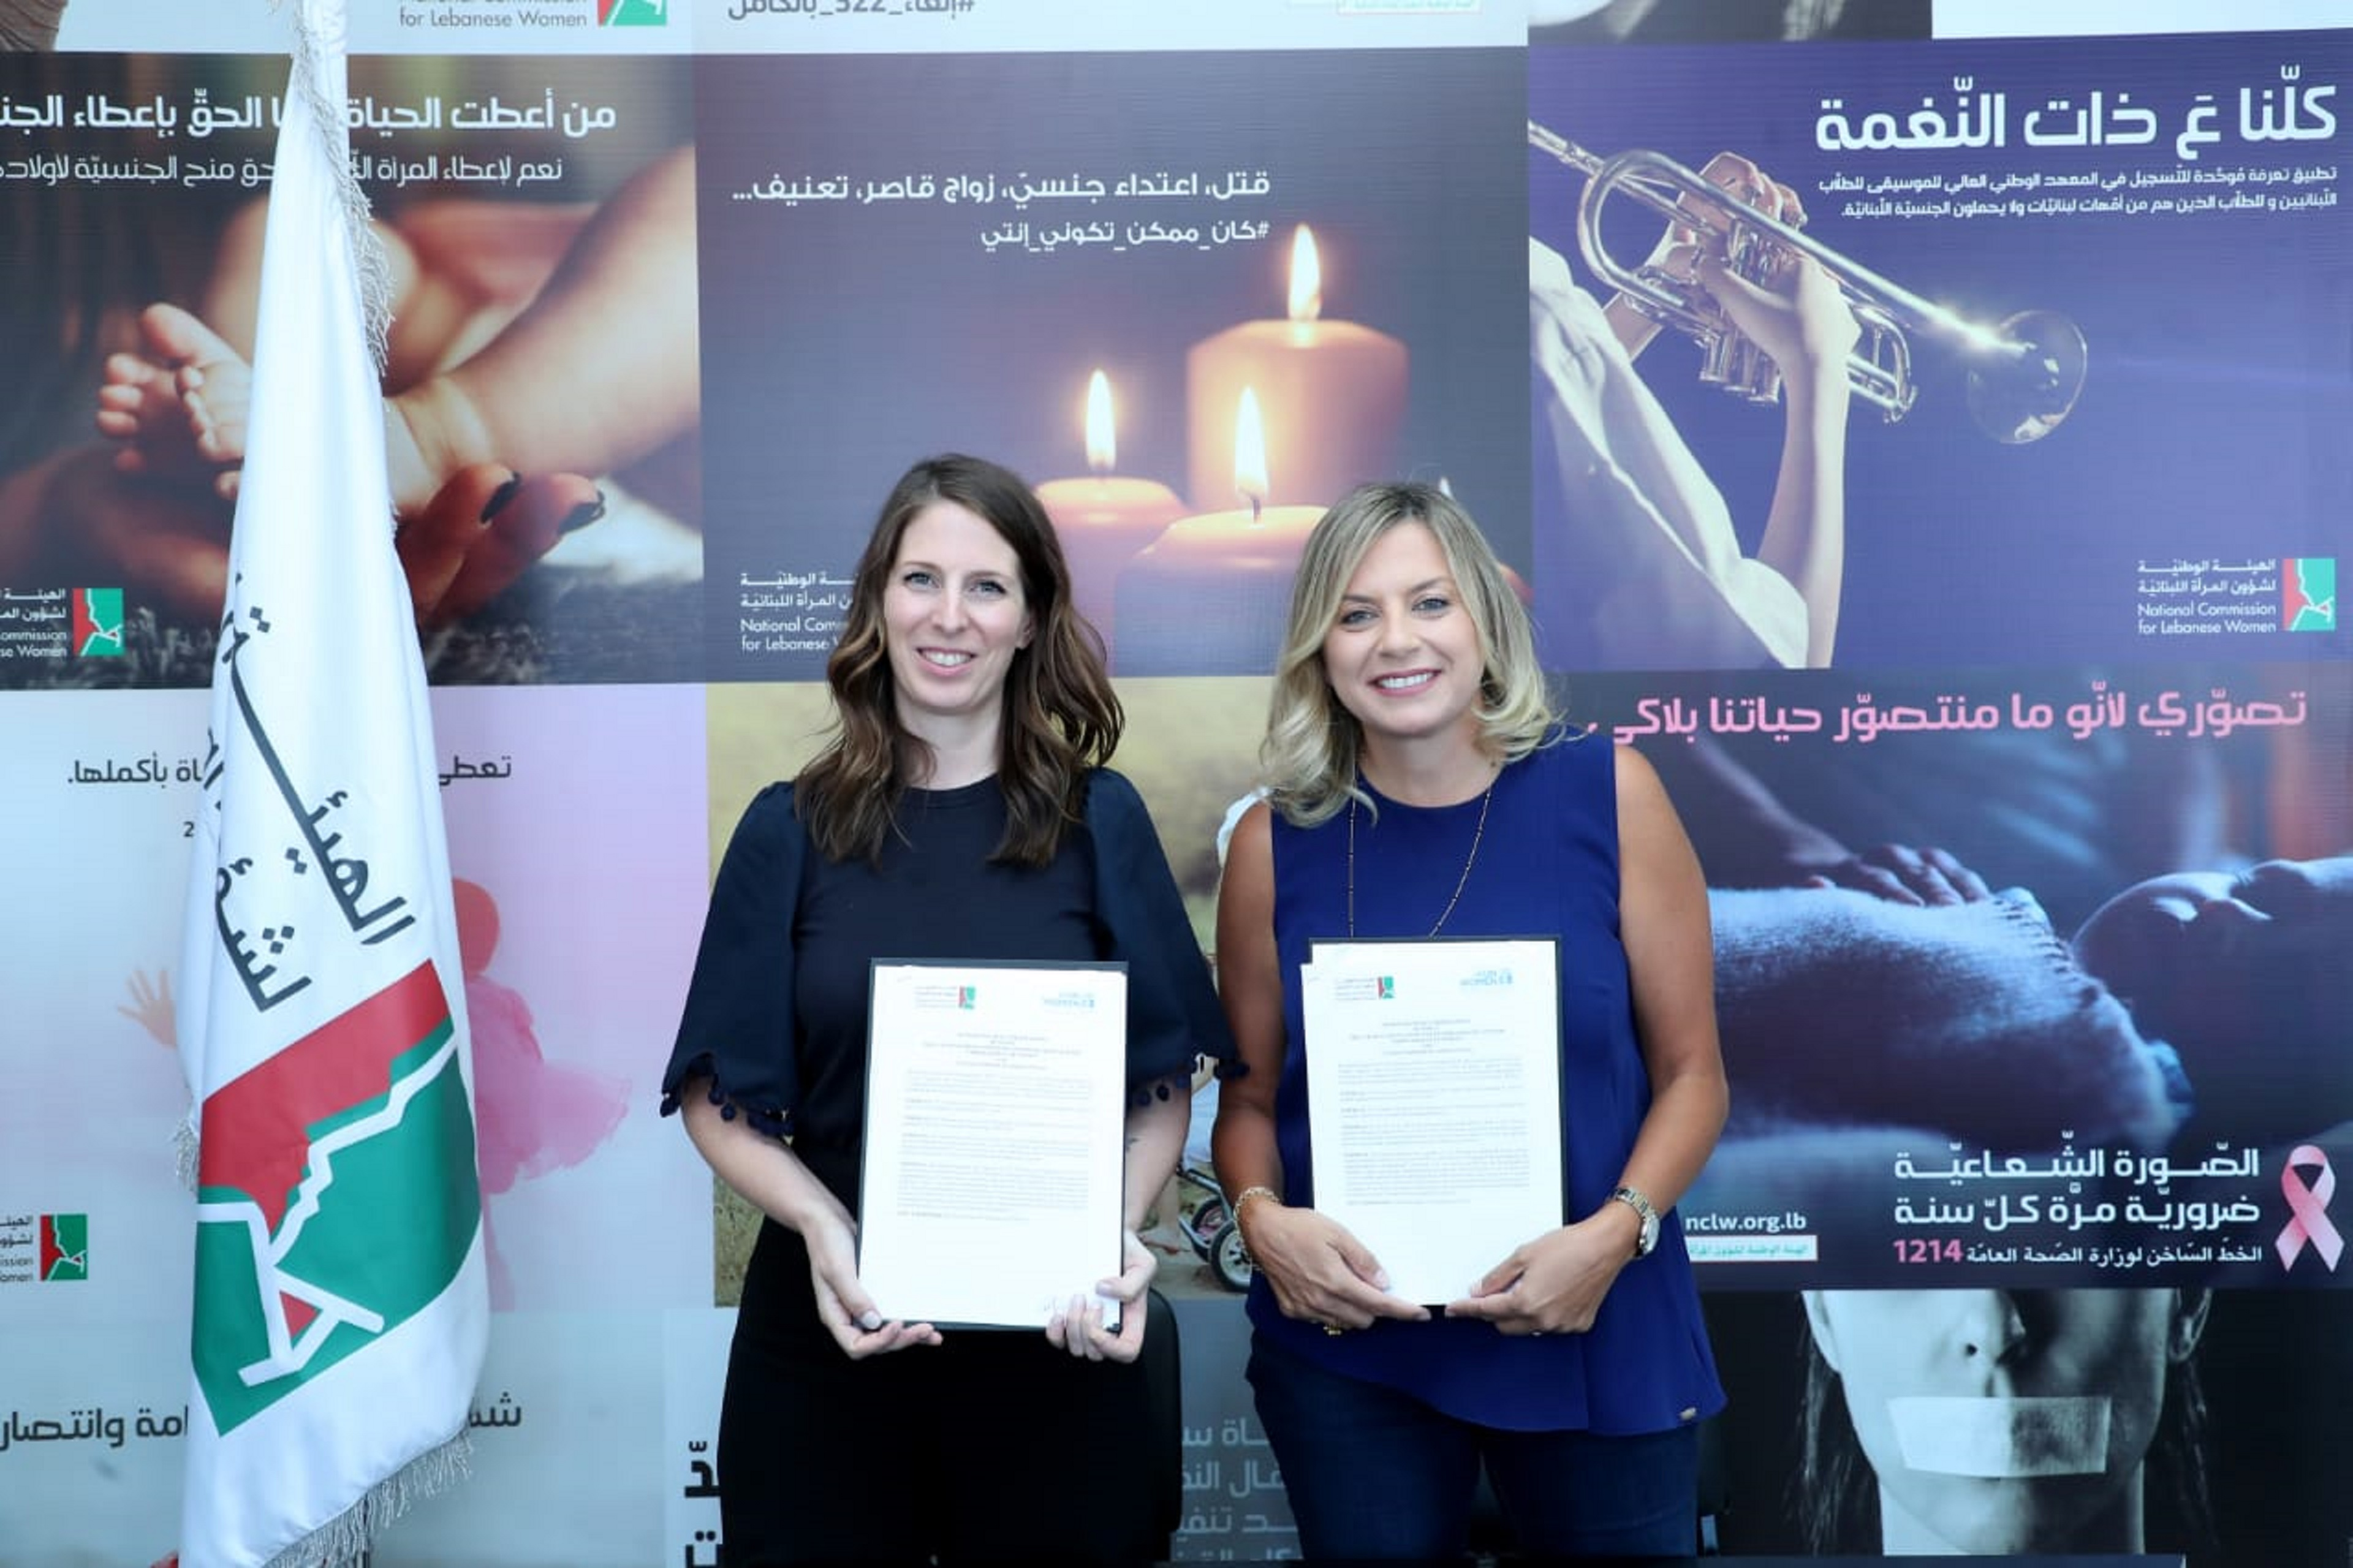 Press release: The National Commission for Lebanese Women signs a memorandum of understanding with UN Women to enhance the role of women in the areas of security, peace and political, social and economic life